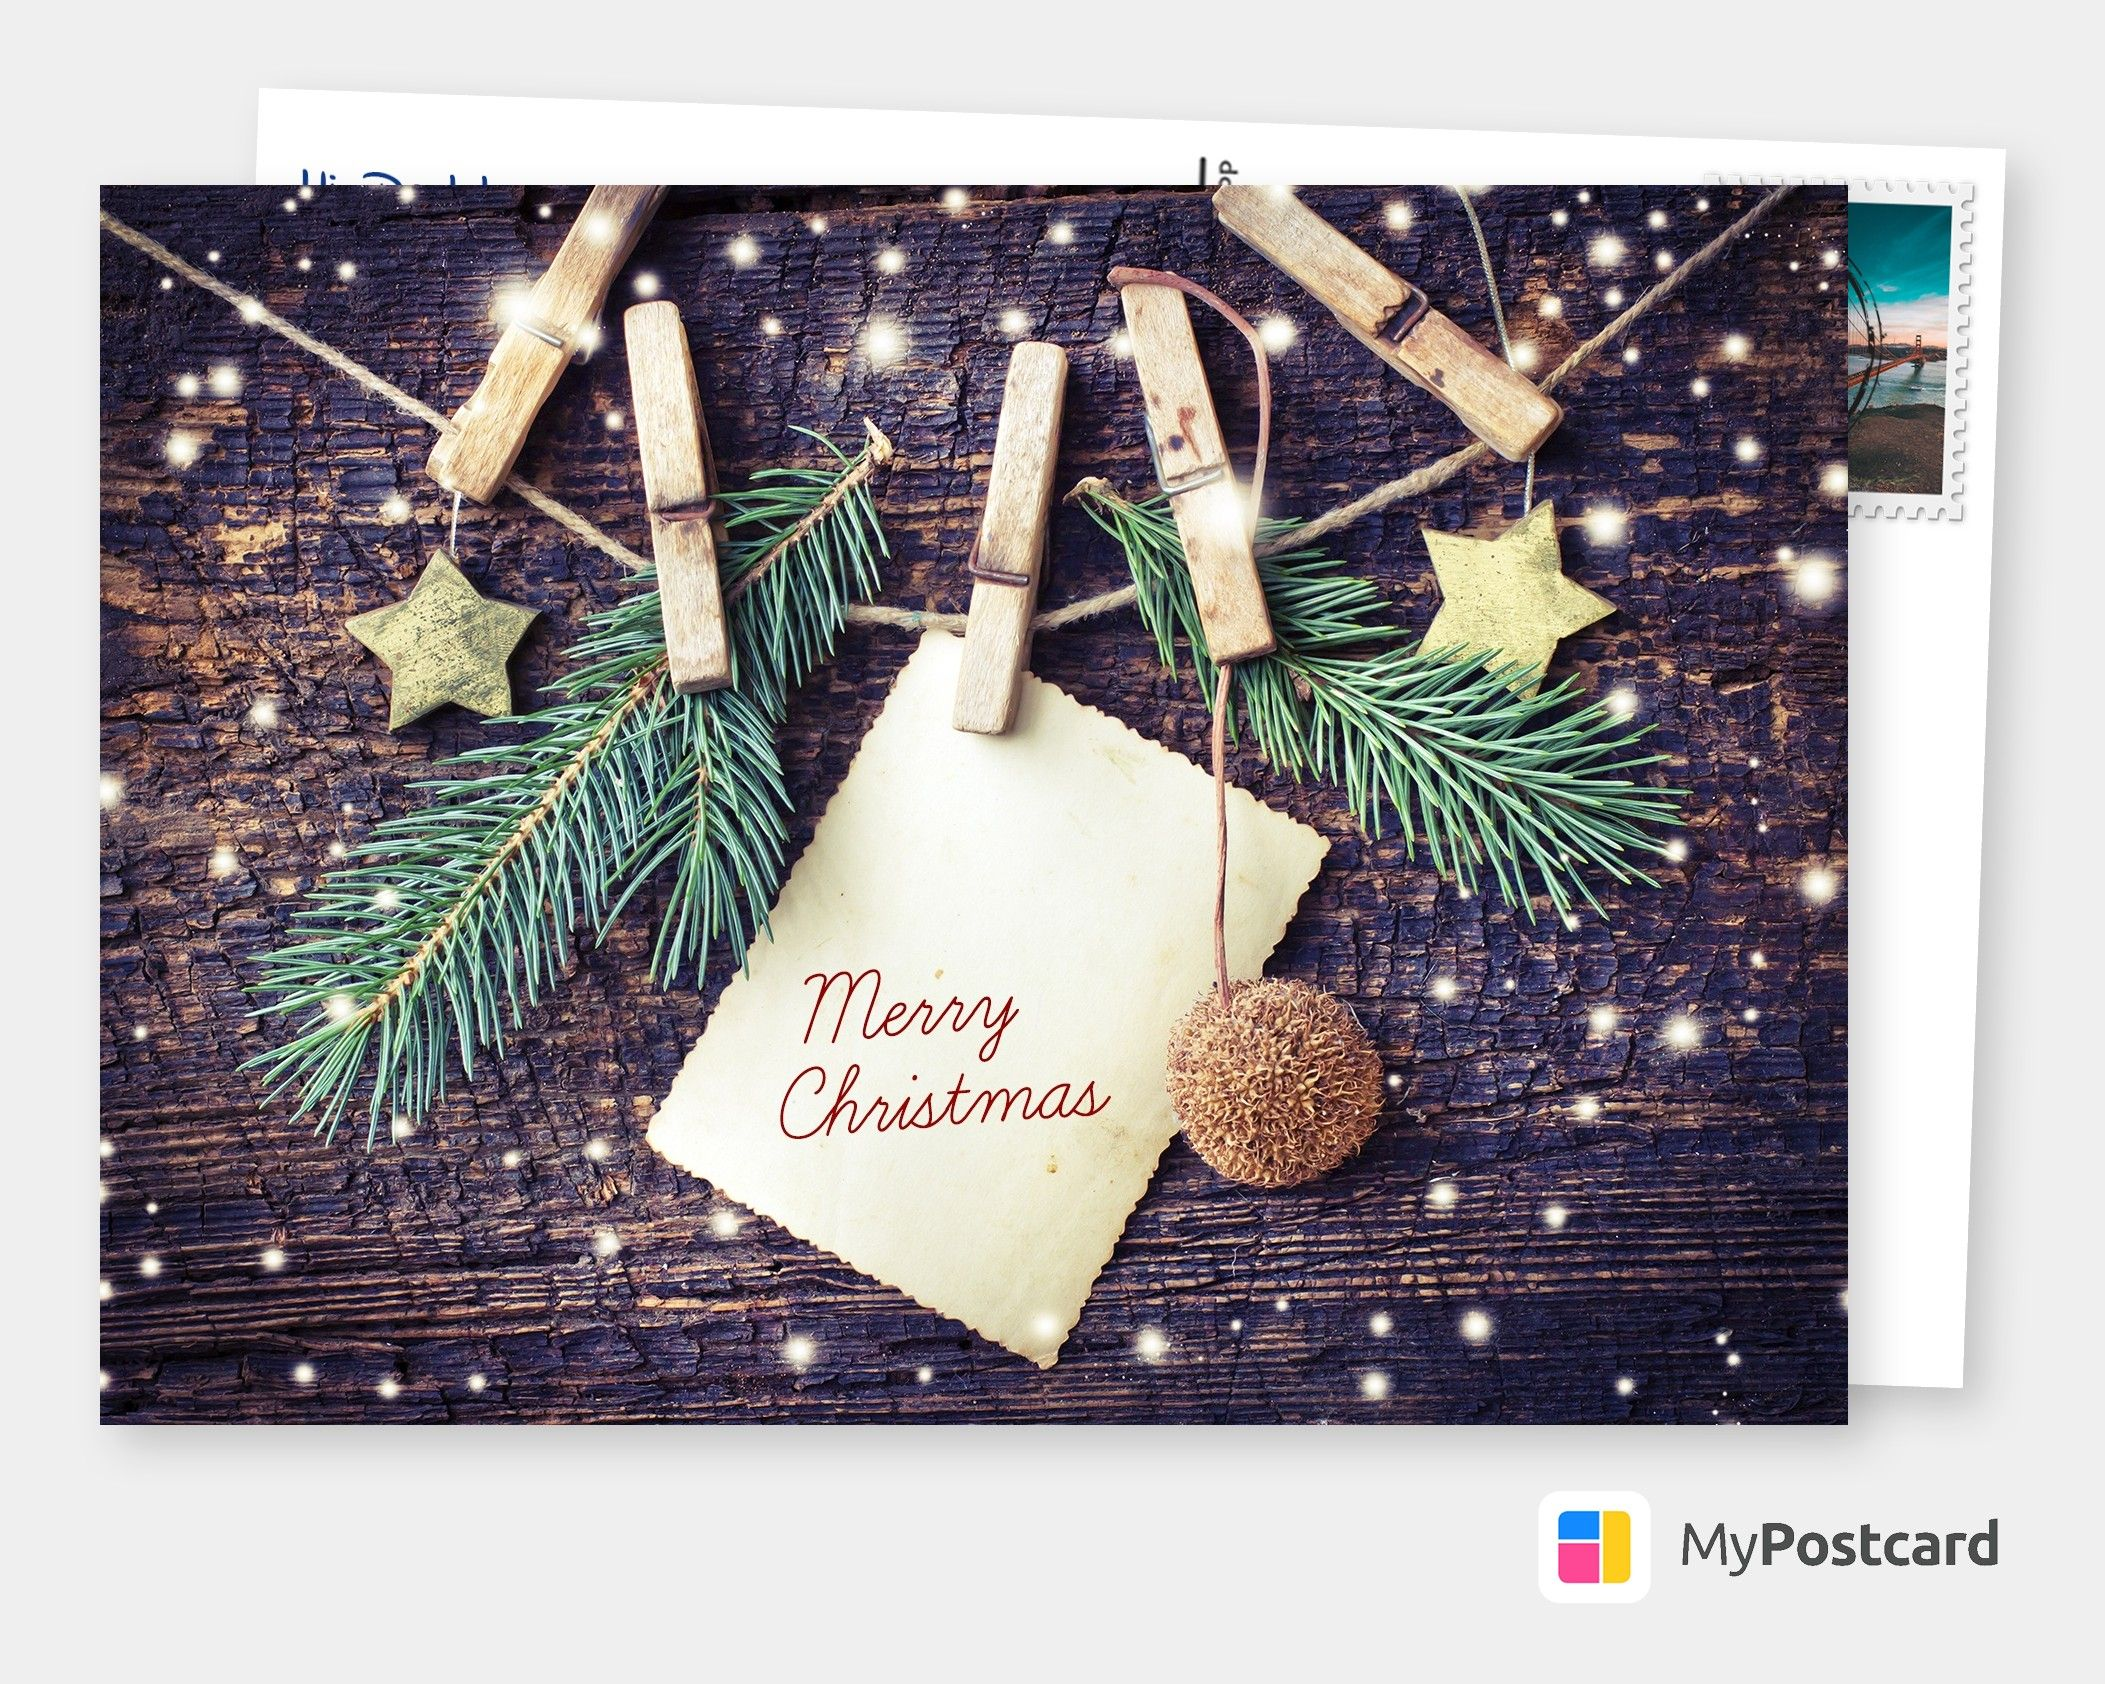 Make Your Own Christmas Cards Online Free Printable Templates Printed Mailed For You Photo Cards Postcards Photo Greeting Cards Online Printed Free Christmas Card Template